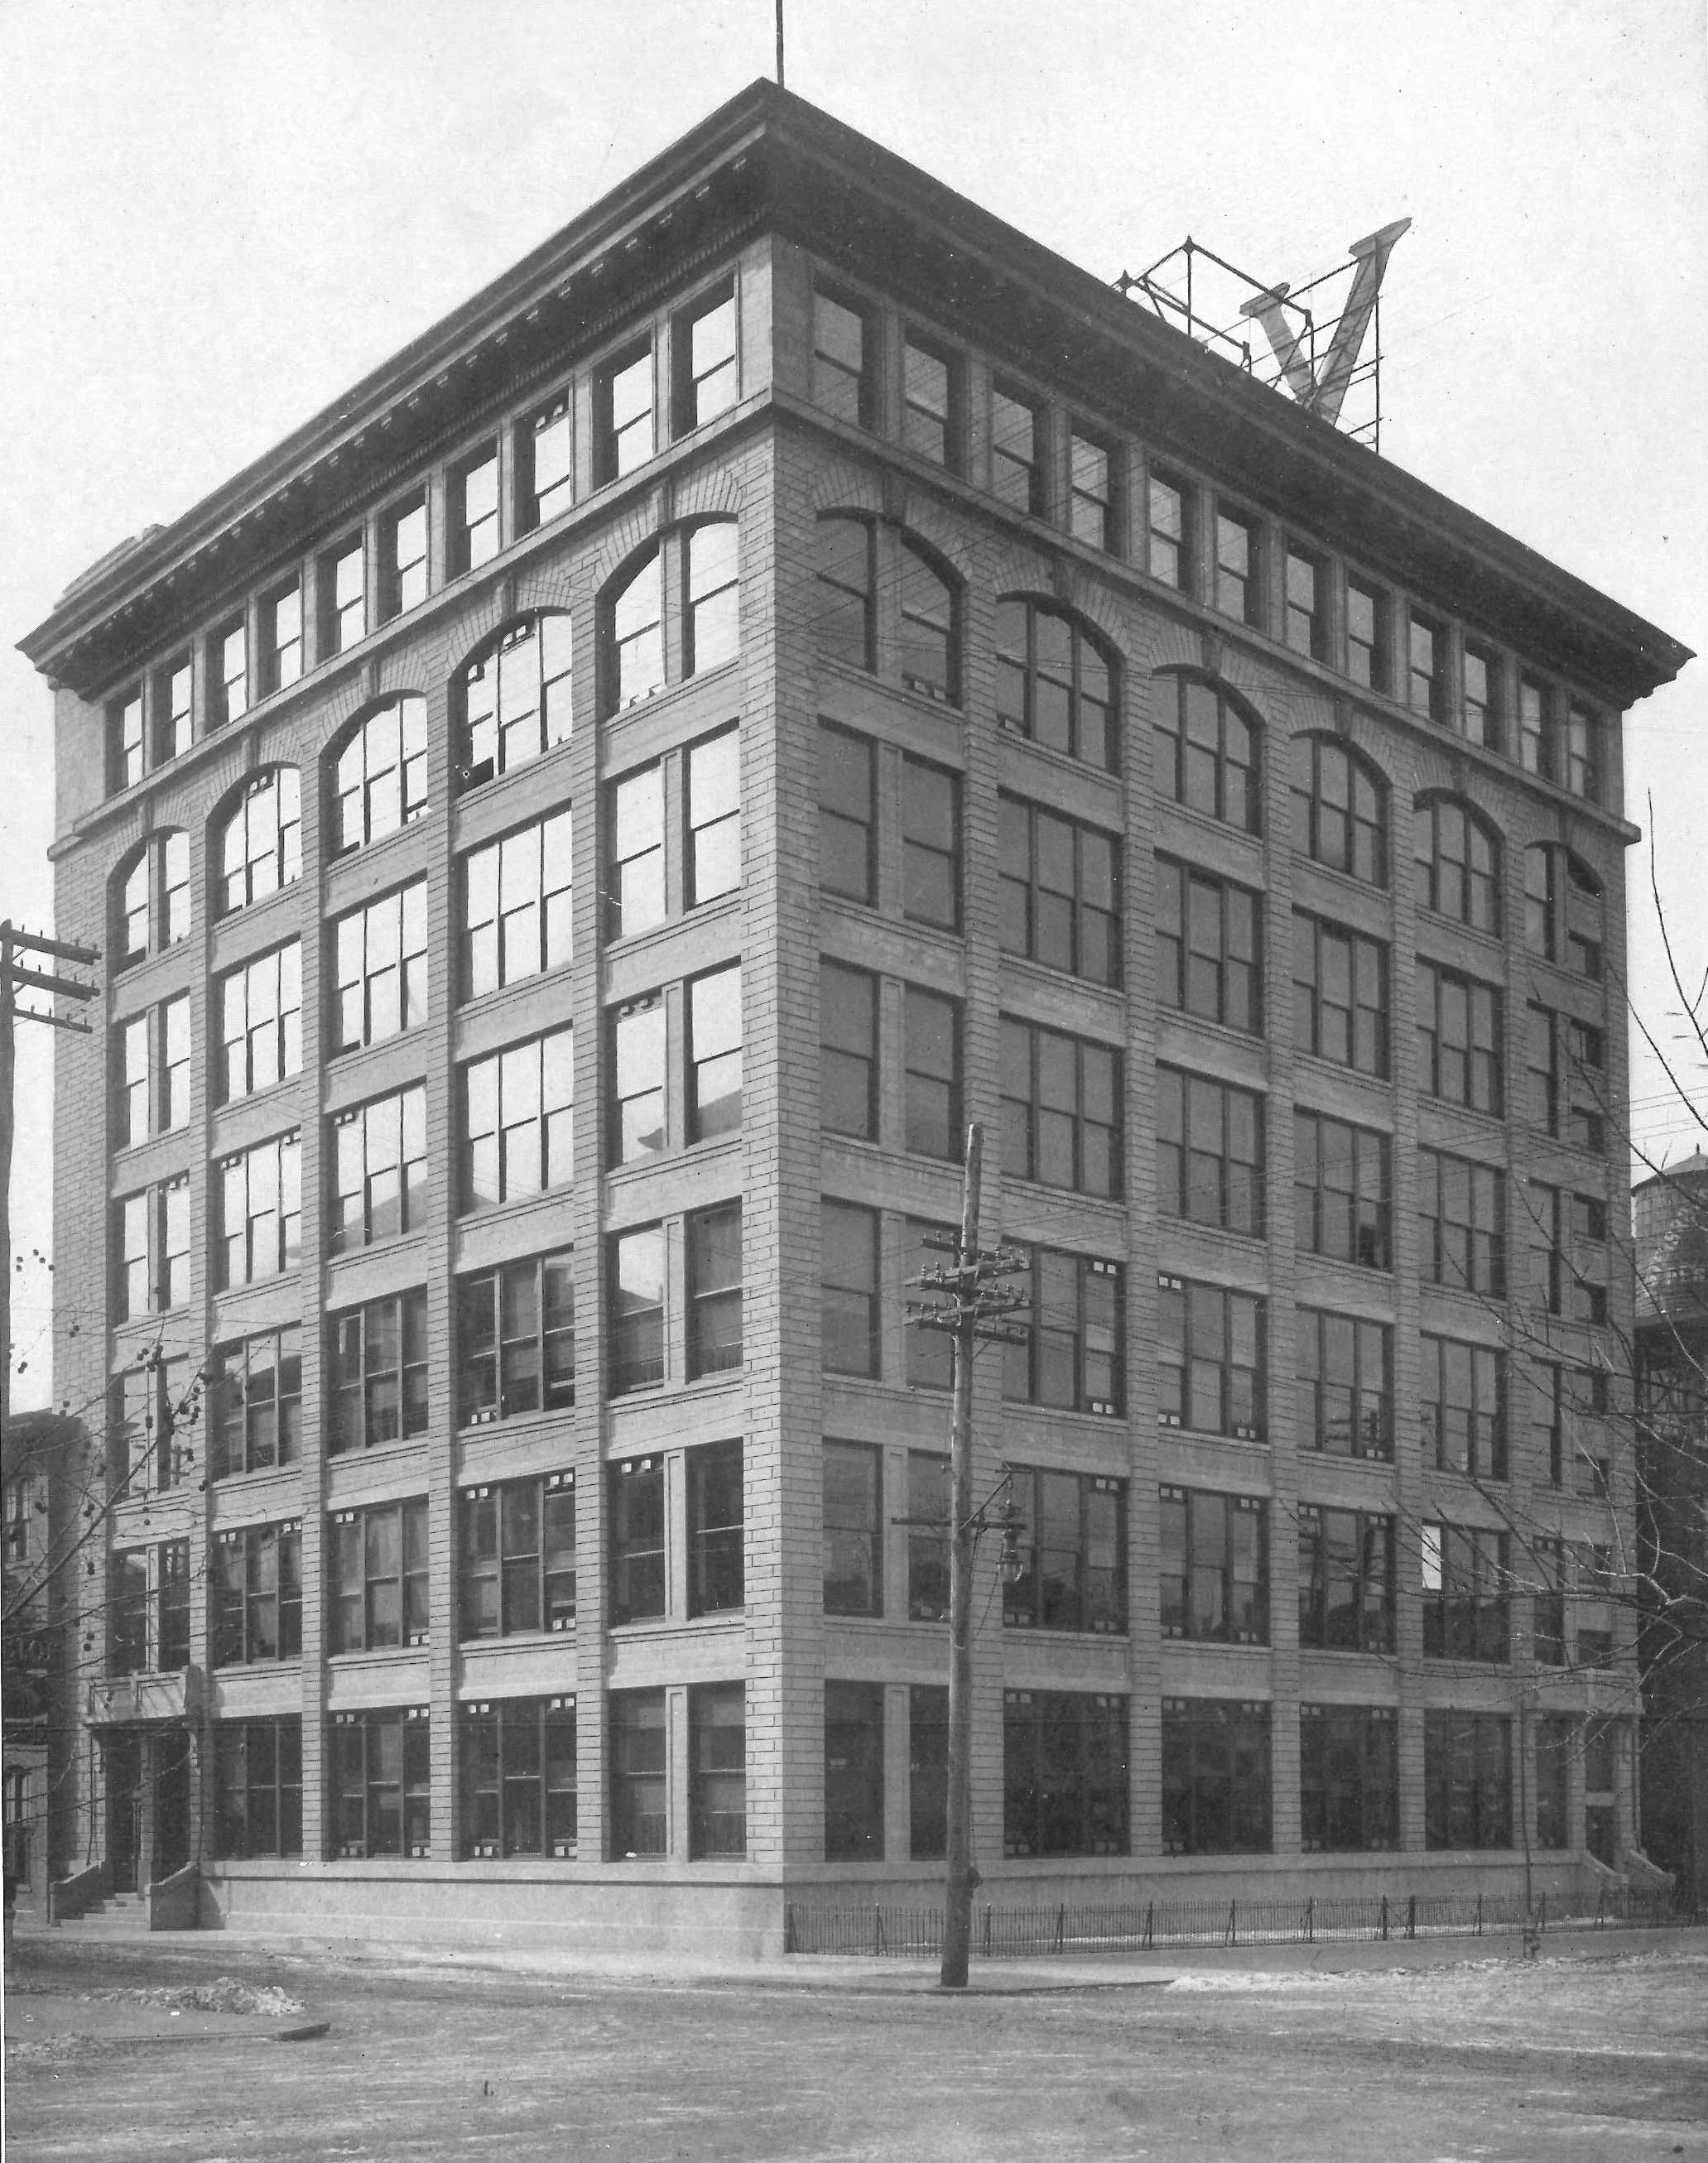 Building 15, with 3 floors added on